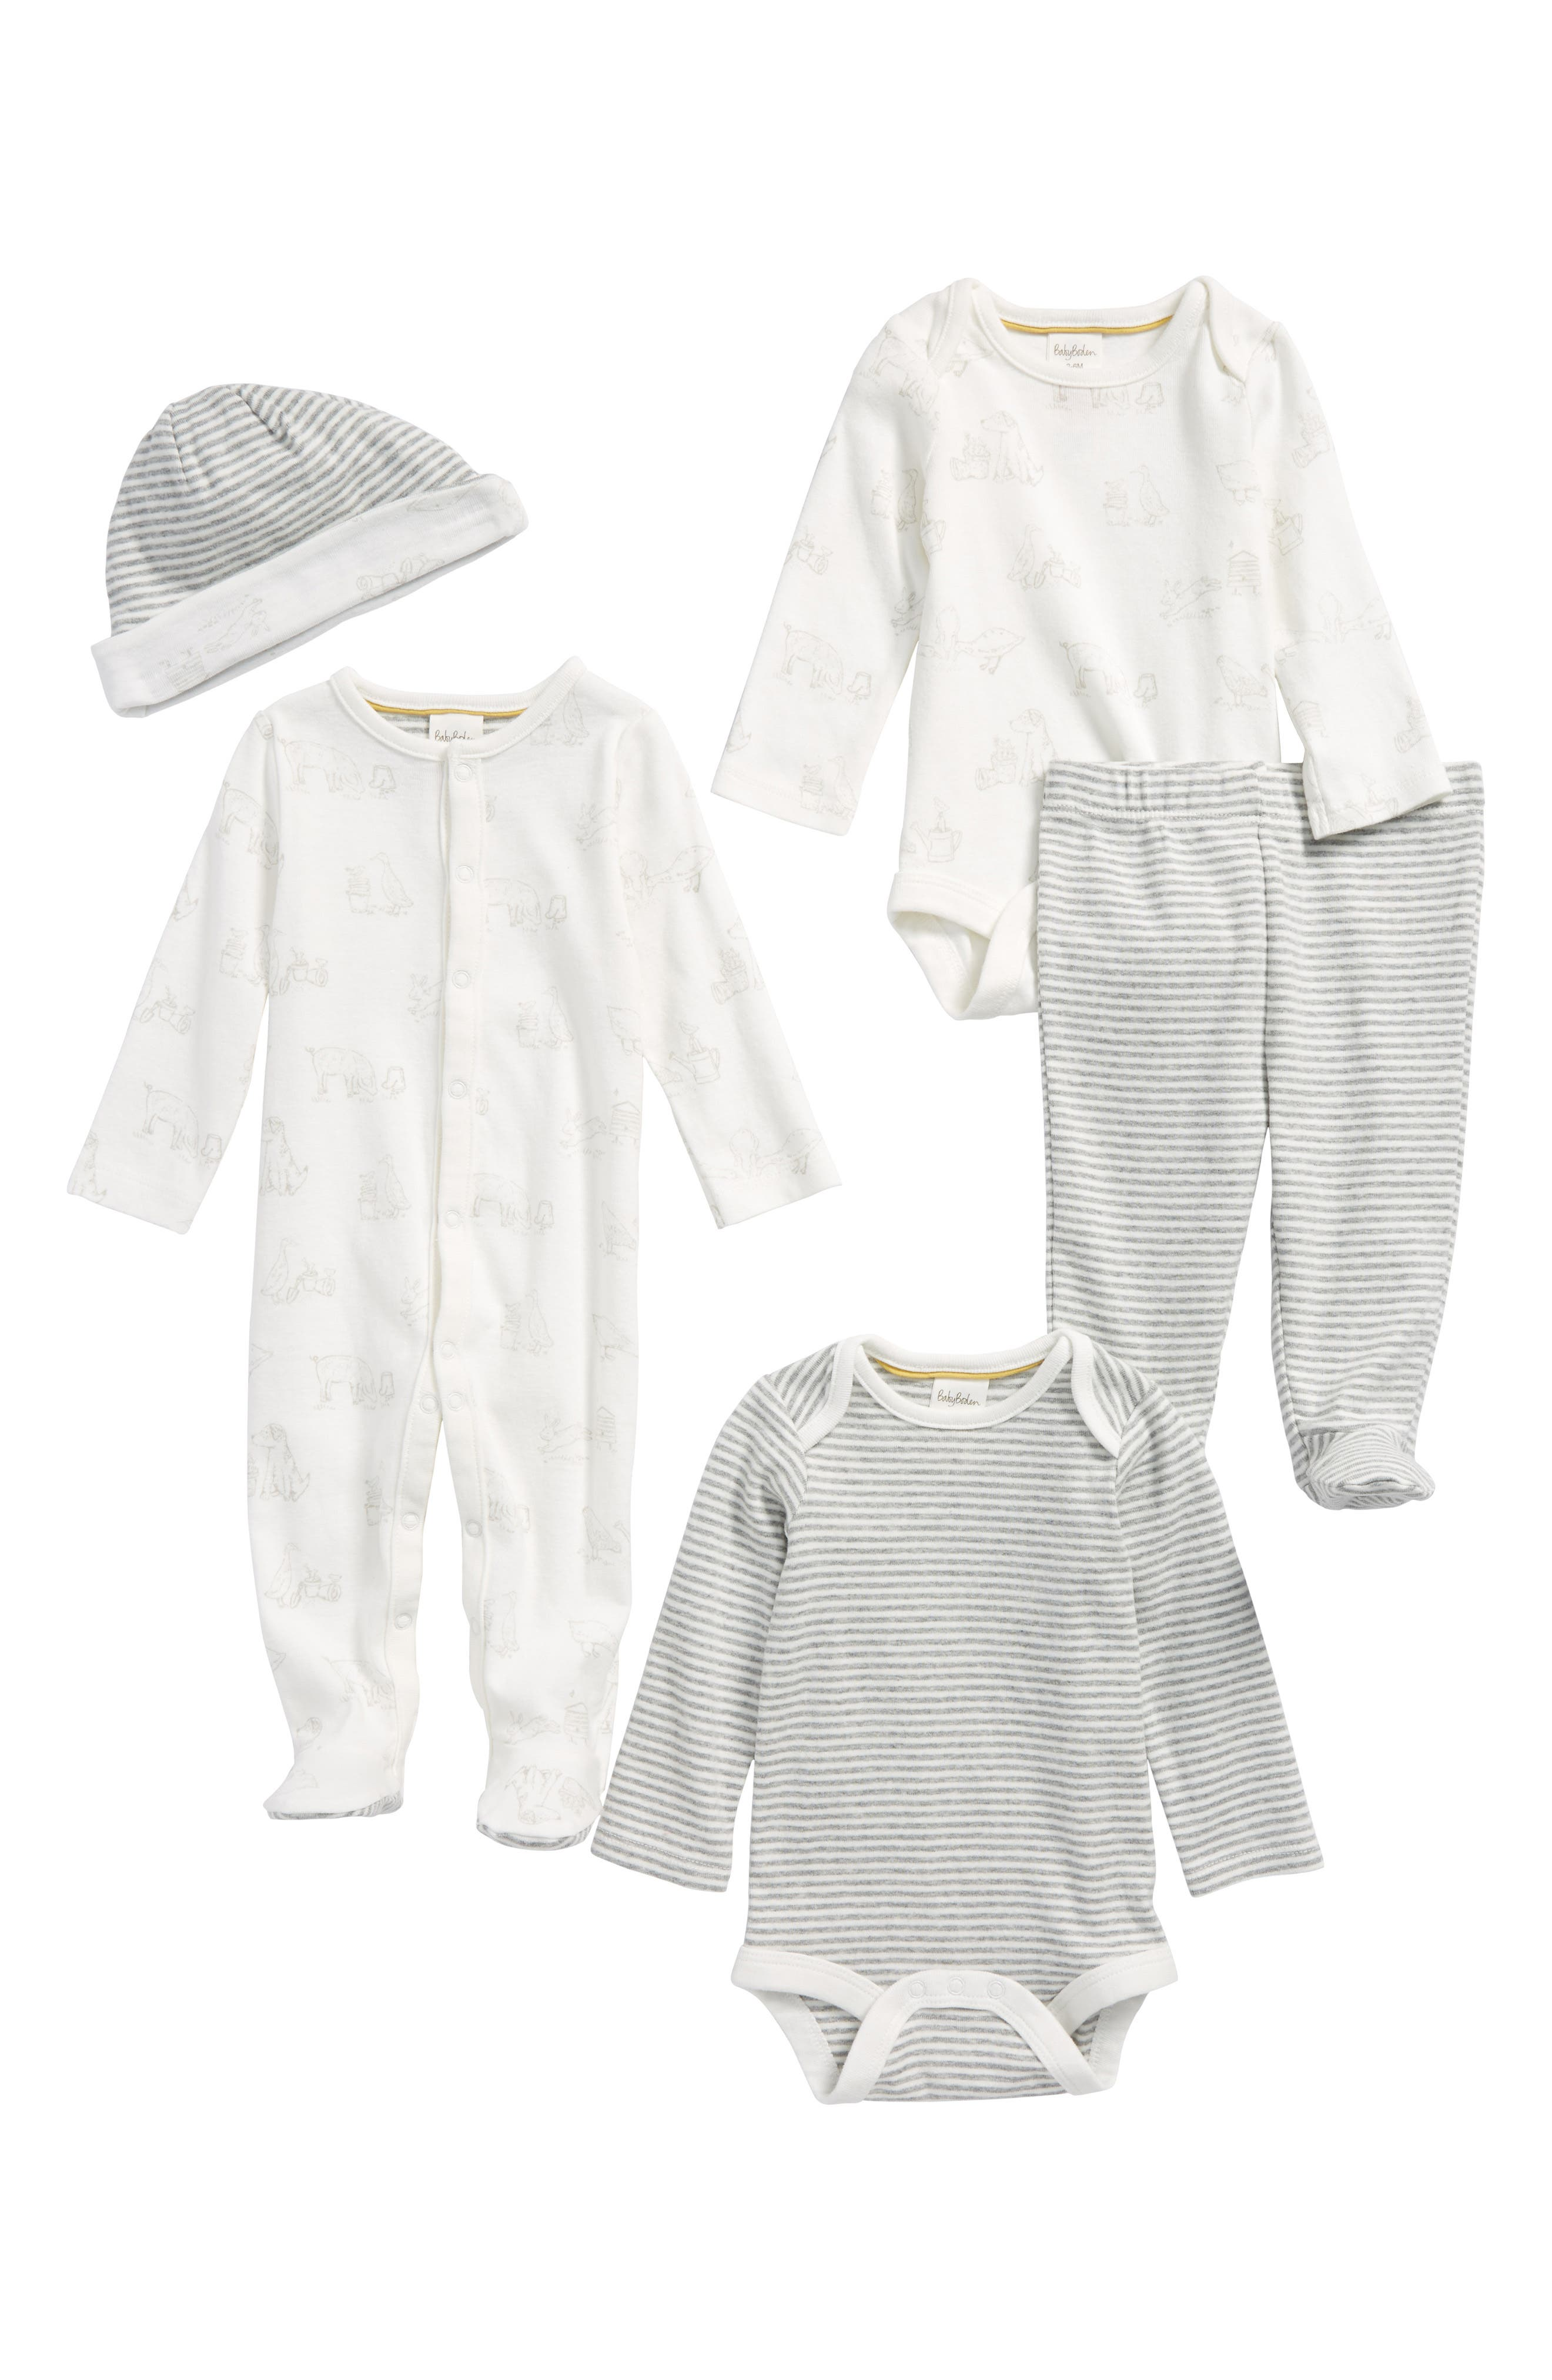 5-Piece Organic Cotton Gift Set,                             Main thumbnail 1, color,                             904